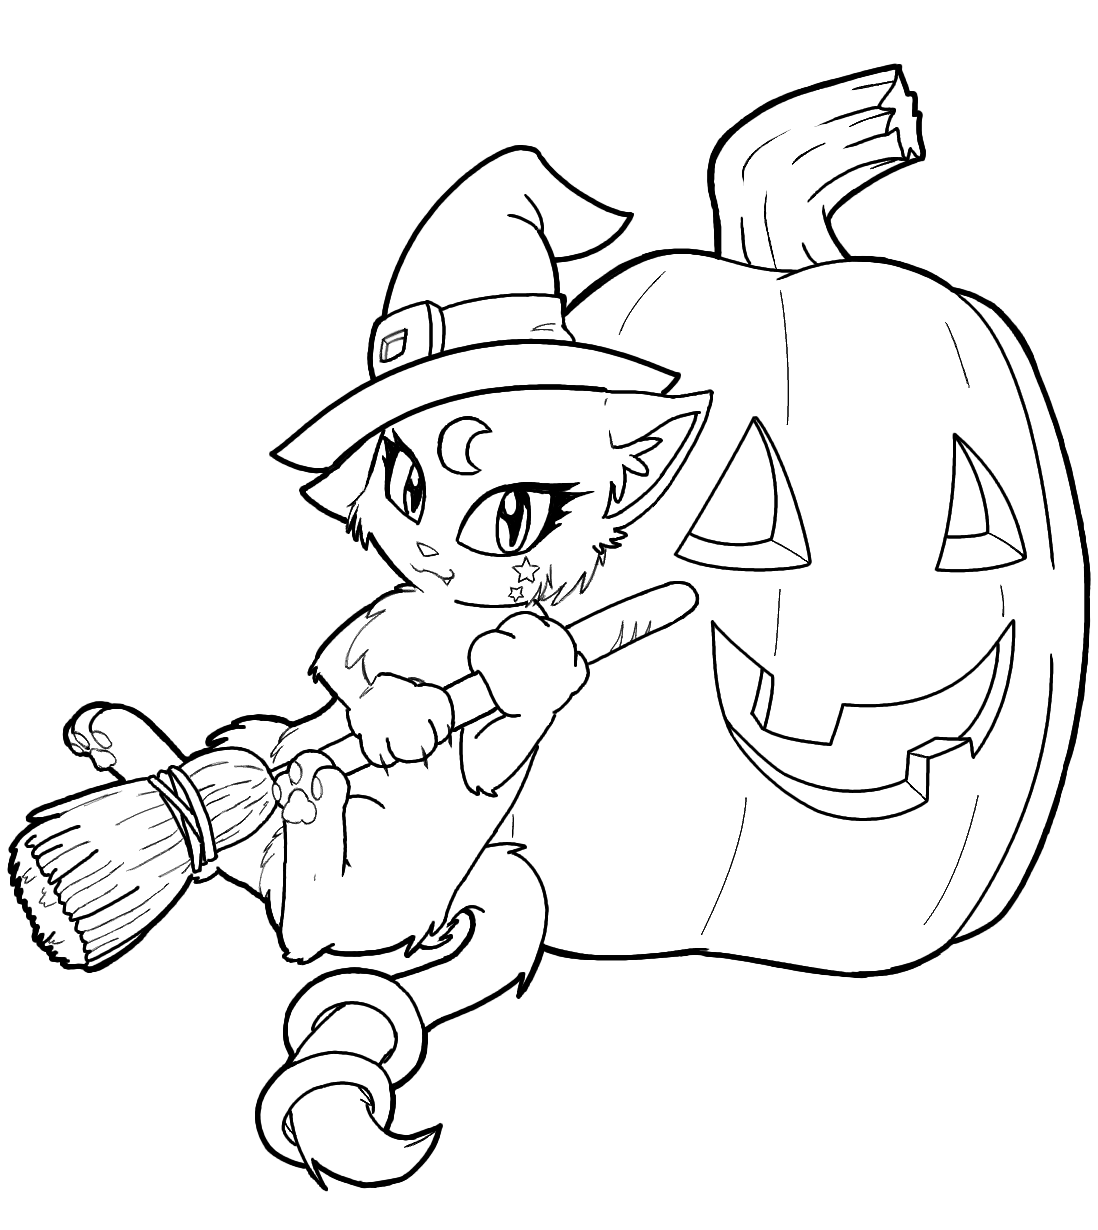 Free coloring pages for halloween - Free Printable With Coloring Pages For Kids One Of The Halloween Cat Coloring Pages 1933 For Your Kids To Print Out And Find Similar Of Free Printable